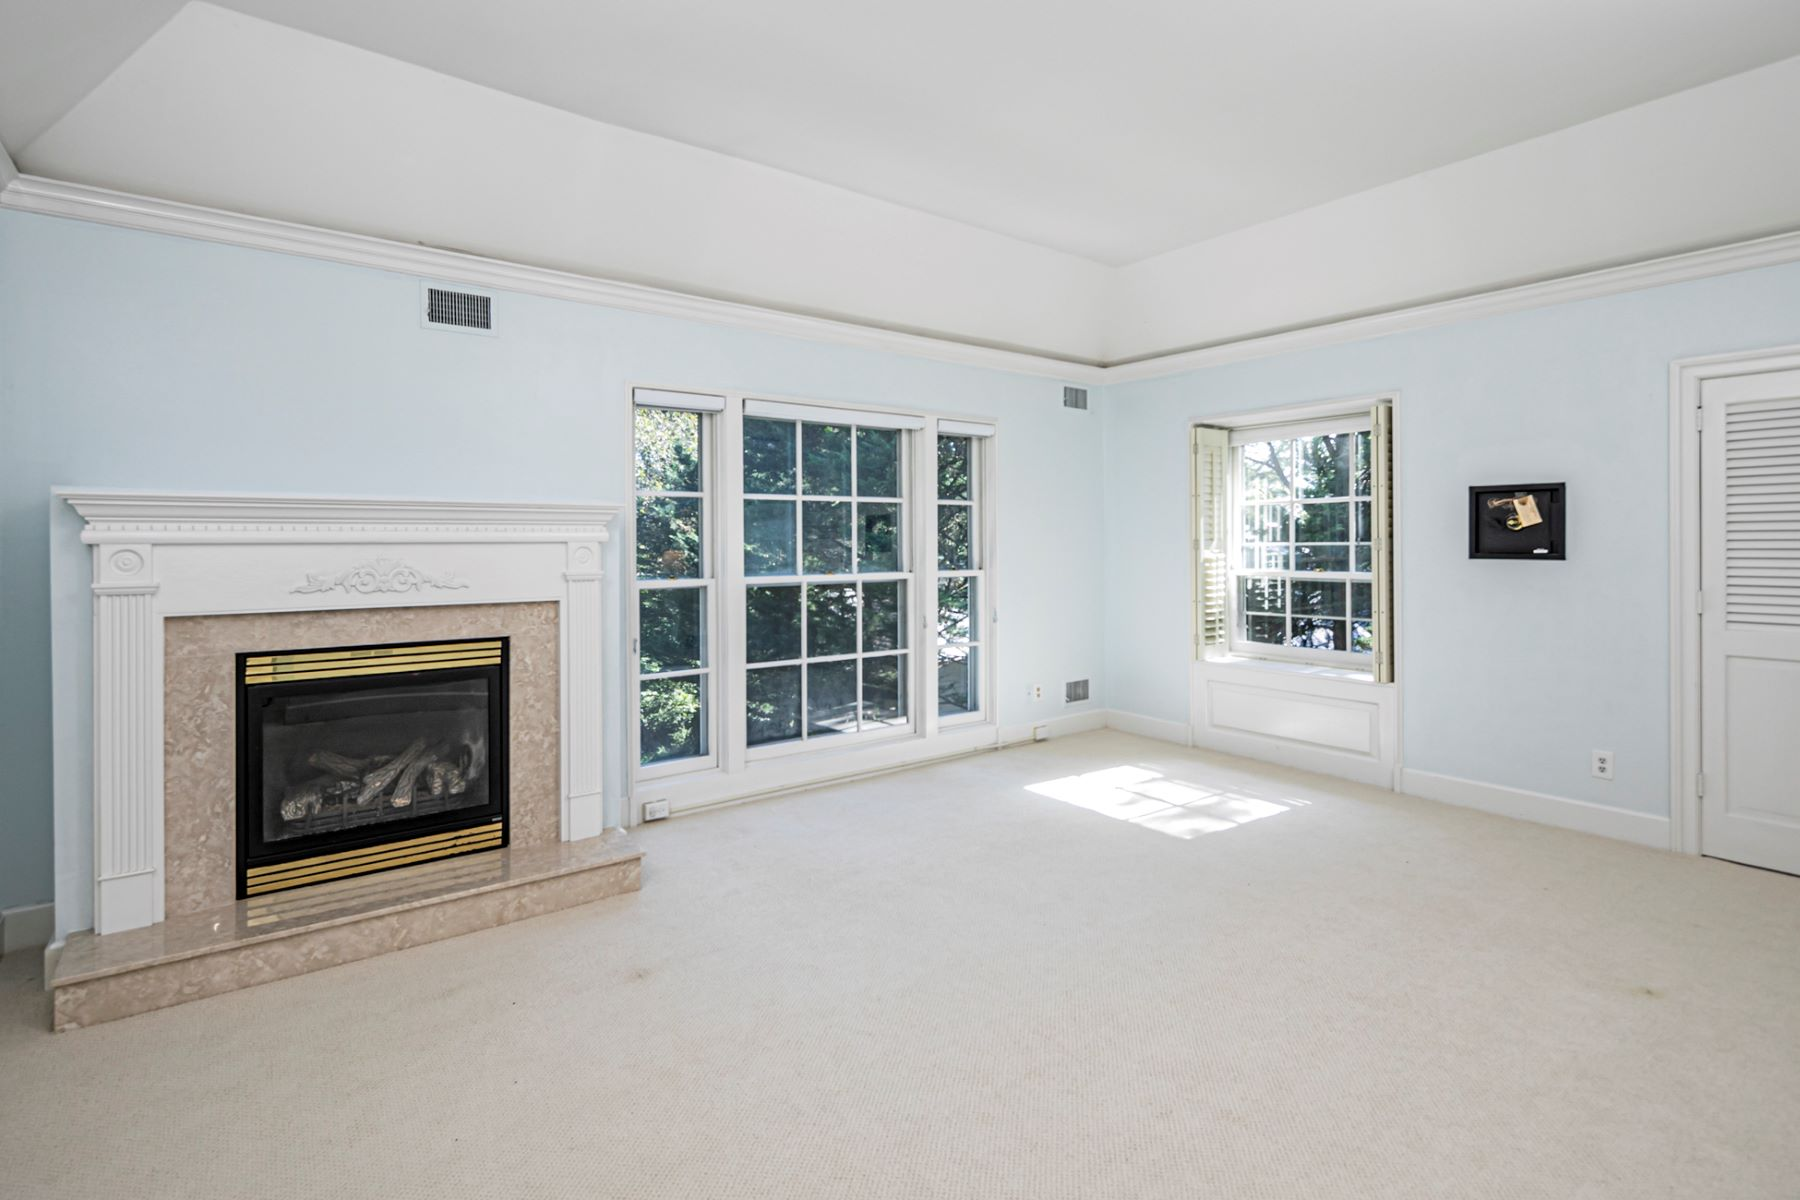 Additional photo for property listing at Stunning Details in a Superb Location 40 Haslet Avenue, Princeton, New Jersey 08540 United States